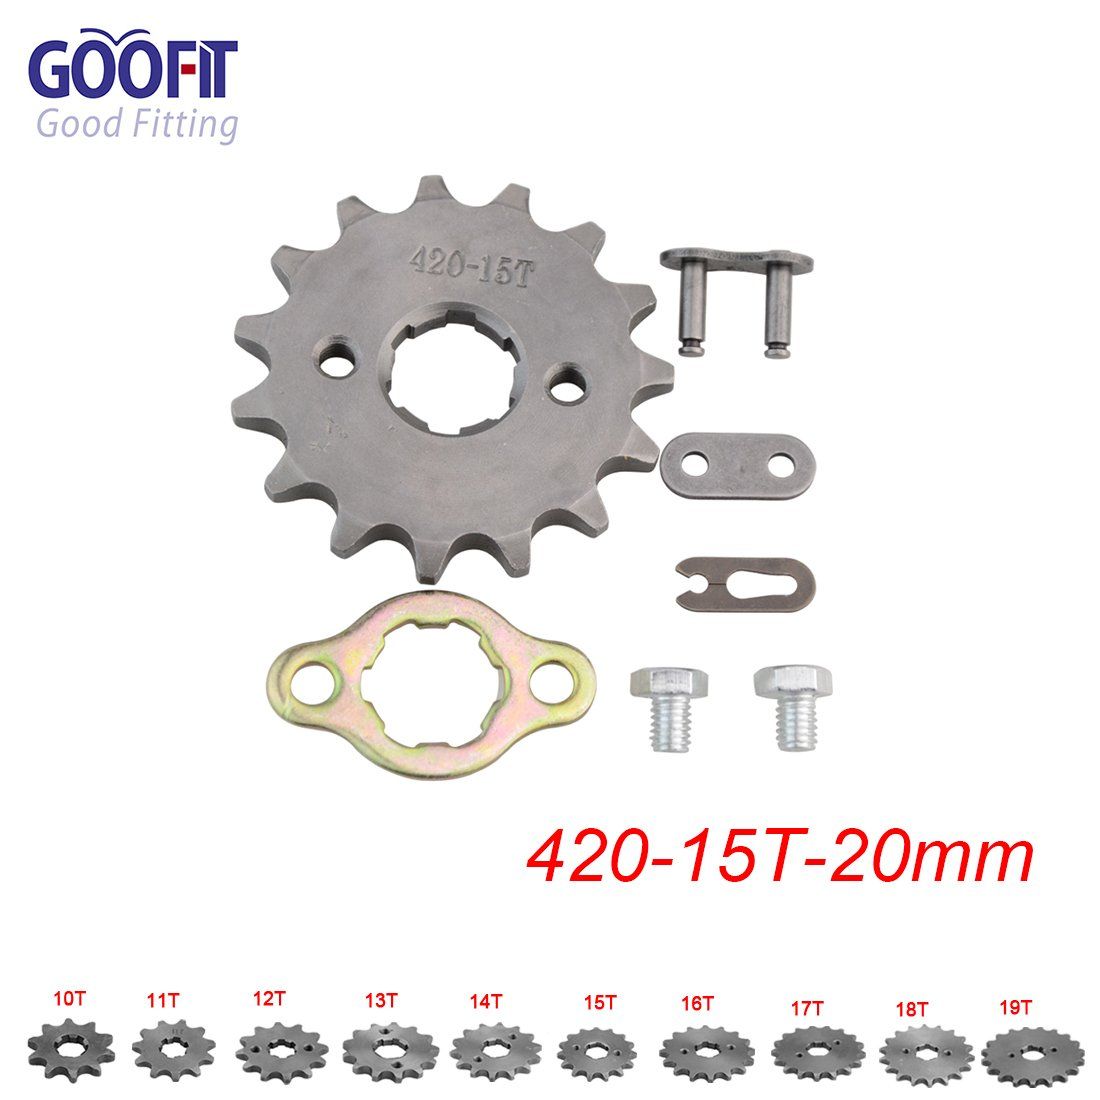 GOOFIT 420 17 20mm Tooth Front Engine motorcycle Sprocket Chain Retainer Plate LockerEngine For 50cc 70cc 90cc 110cc Motorcycle Dirt Bike ATV Quad